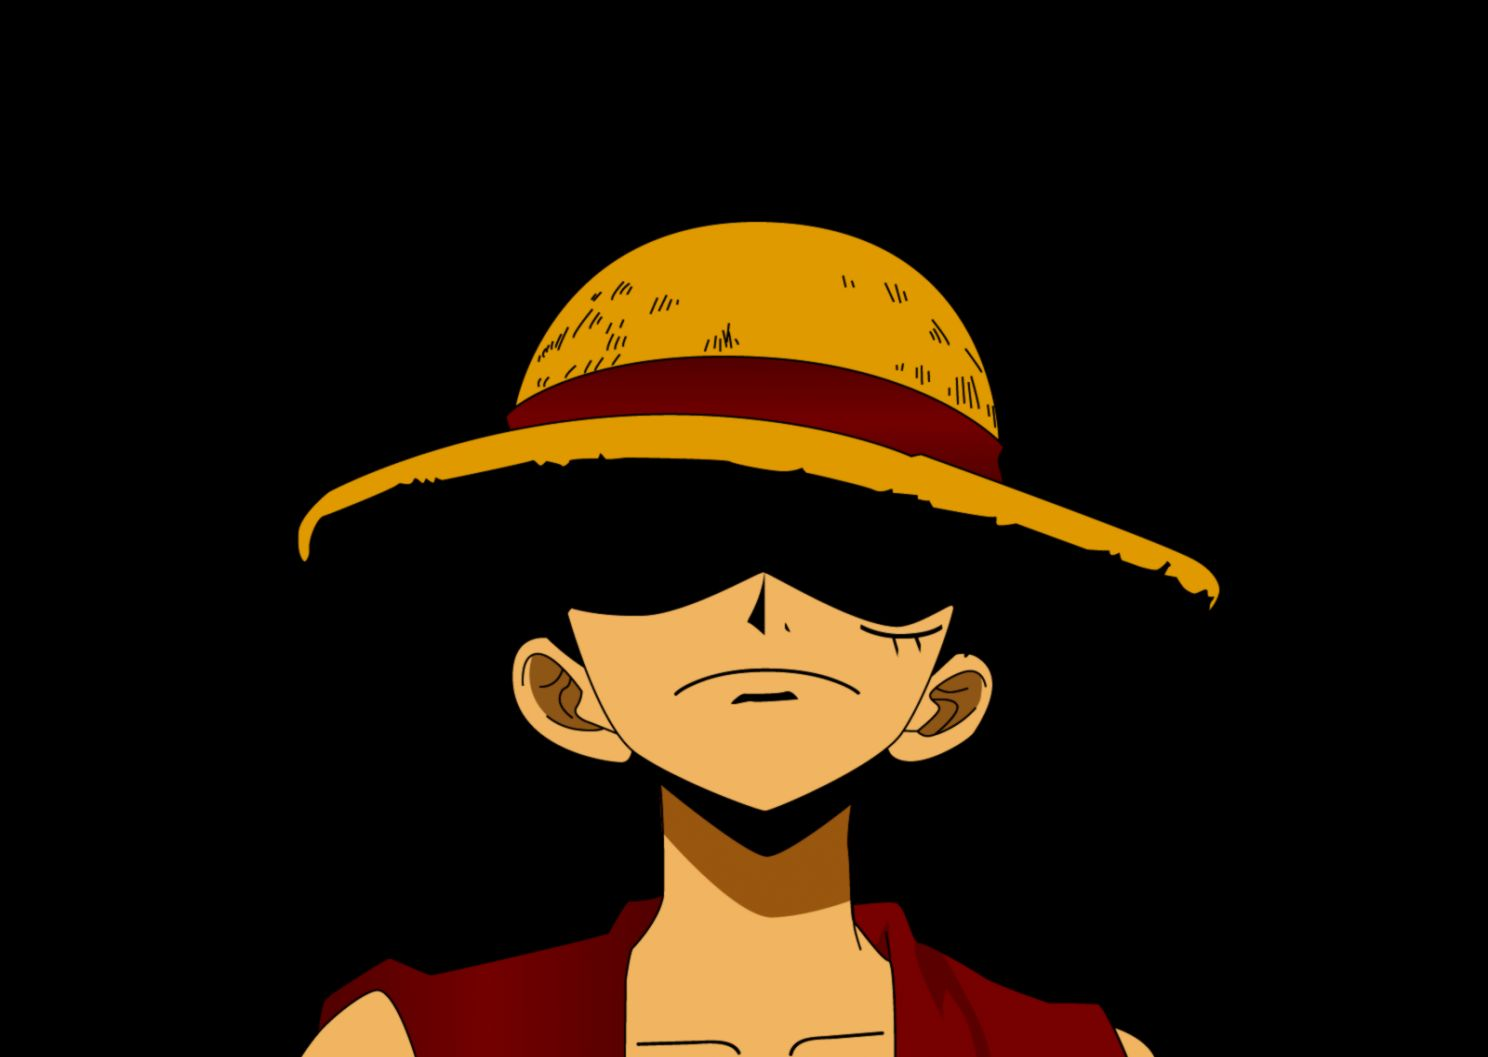 Sanji One Piece Hd Wallpapers Backgrounds Wallpaper One